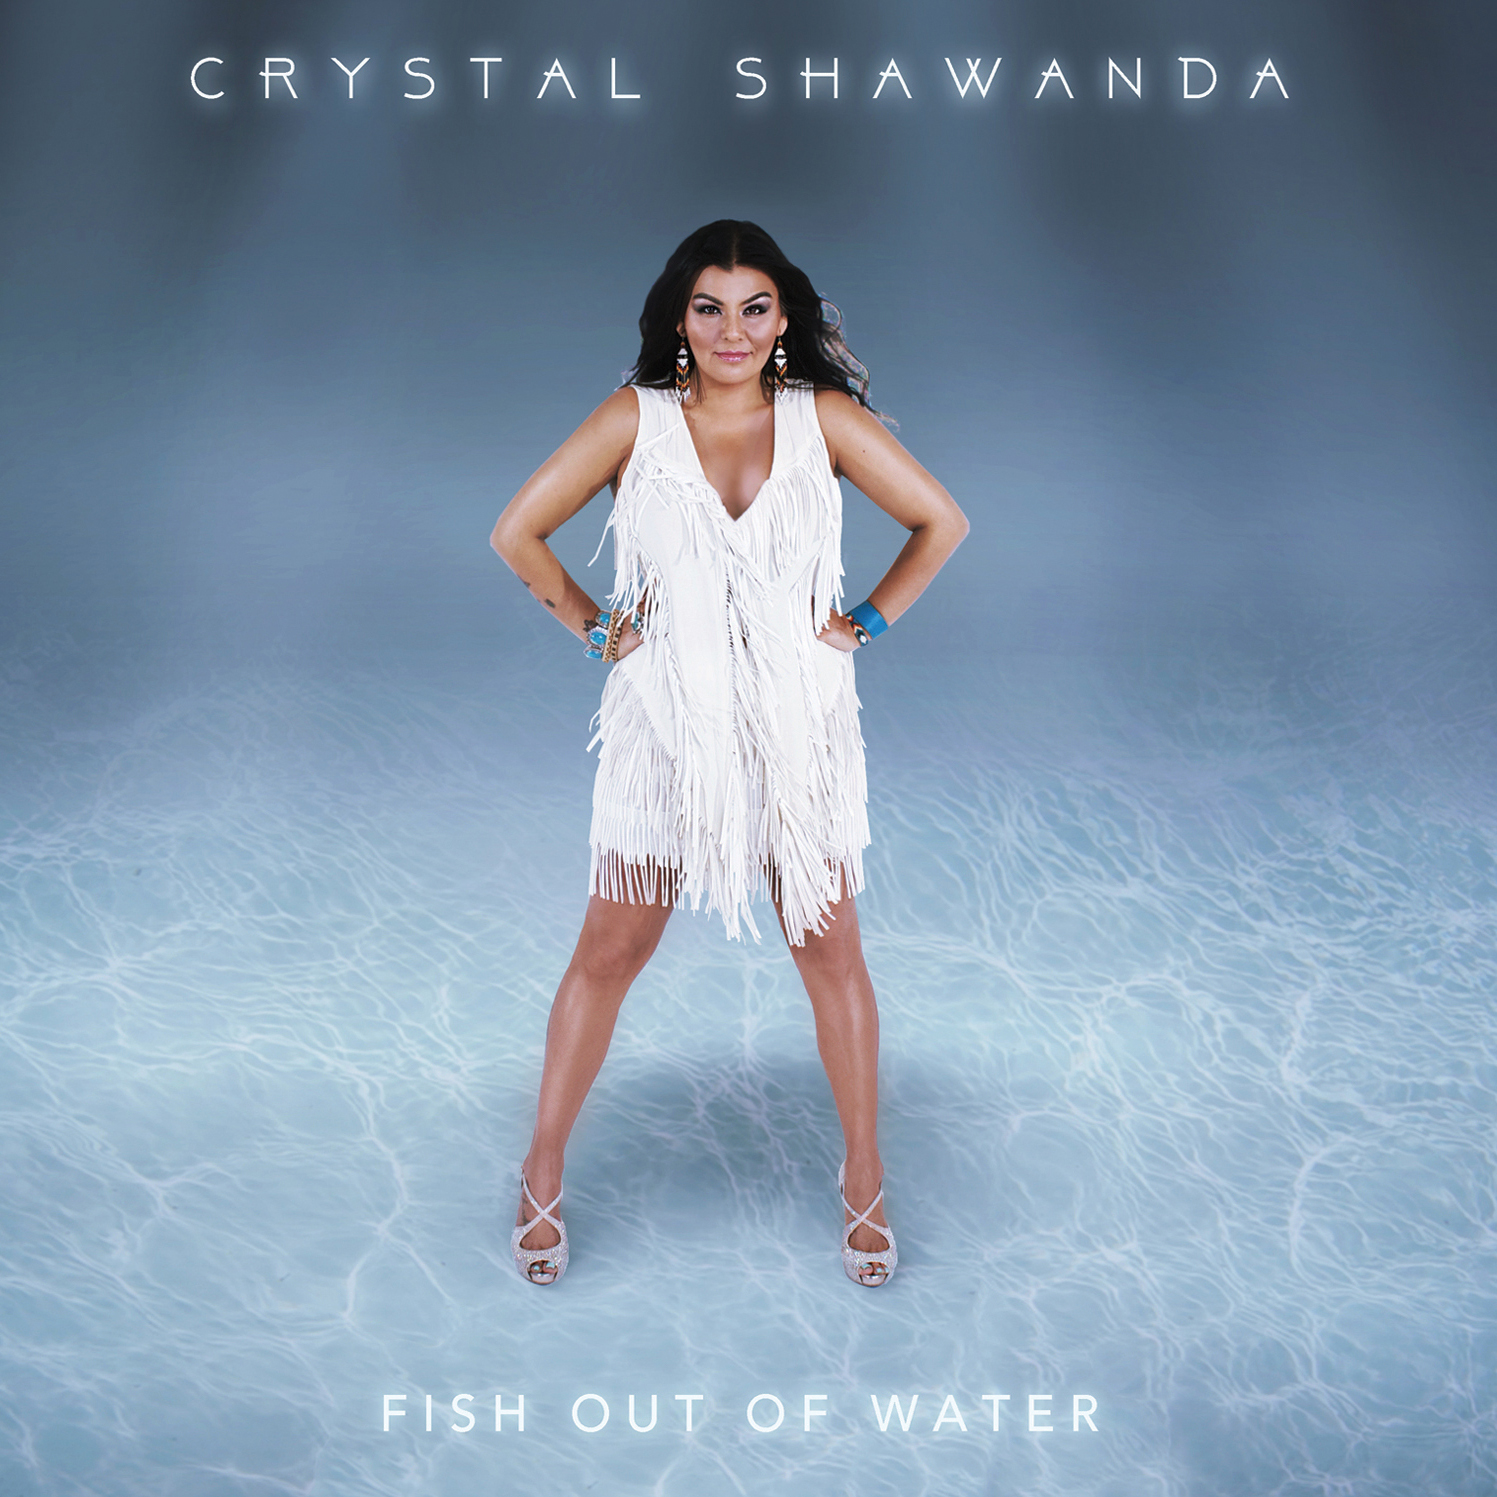 """Pre-order Crystal Shawanda's New Album """"Fish Out of Water"""" on iTunes Now!"""